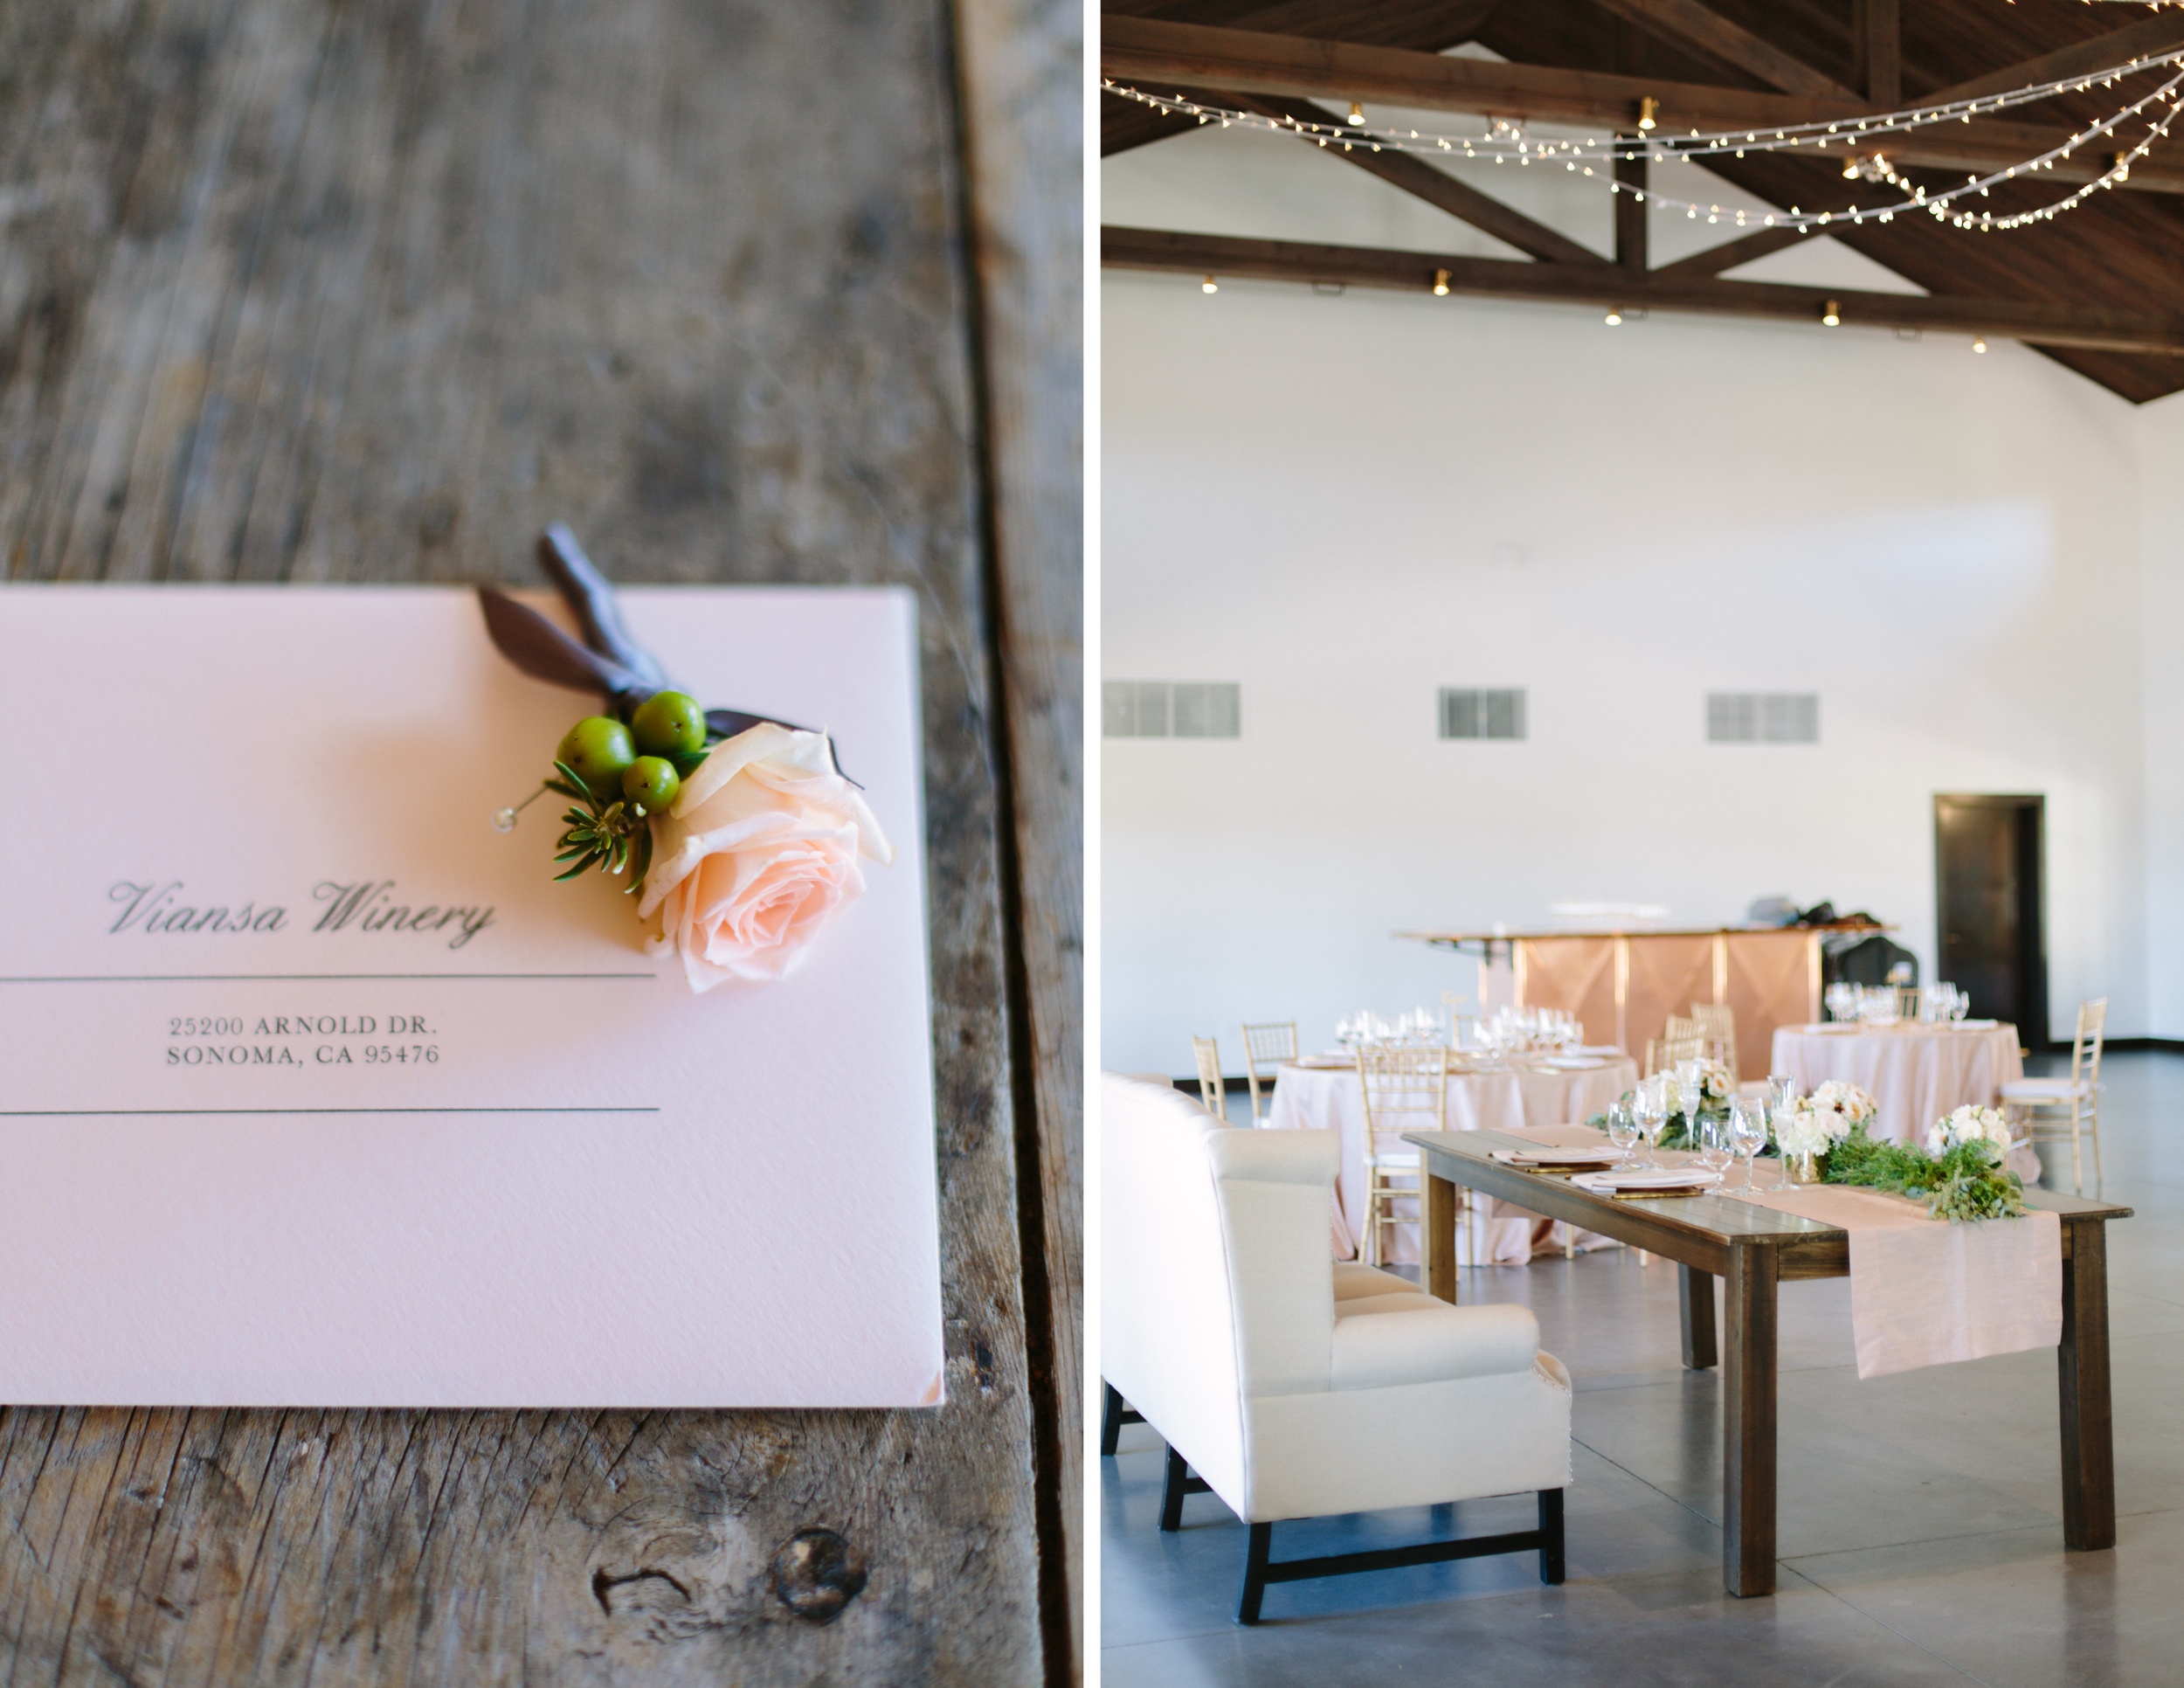 viansa winery wedding 1.jpg